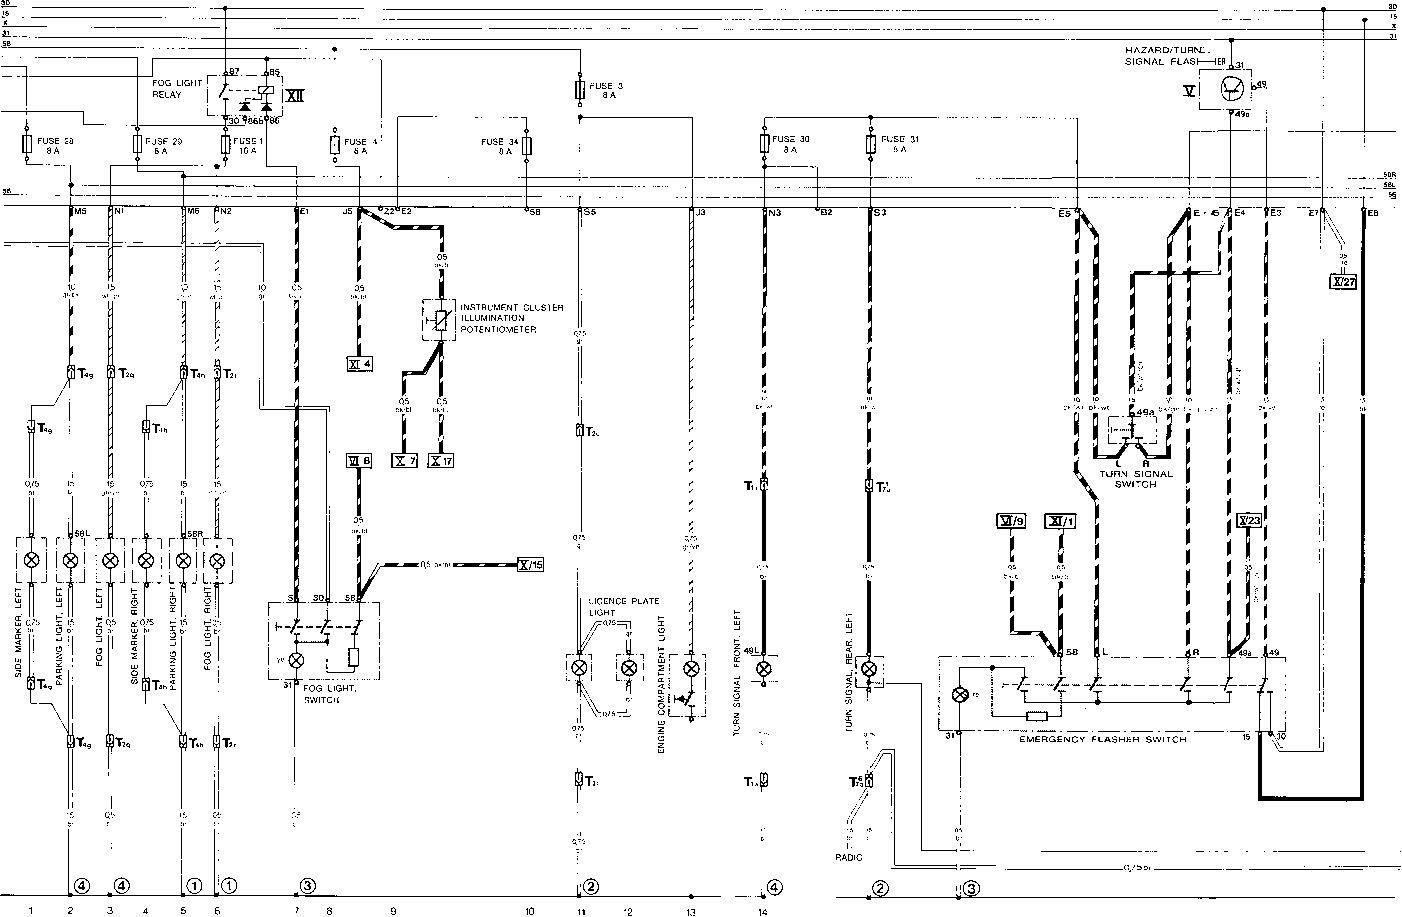 current row diagram type 928 s usa model 83 part iv flow diagram